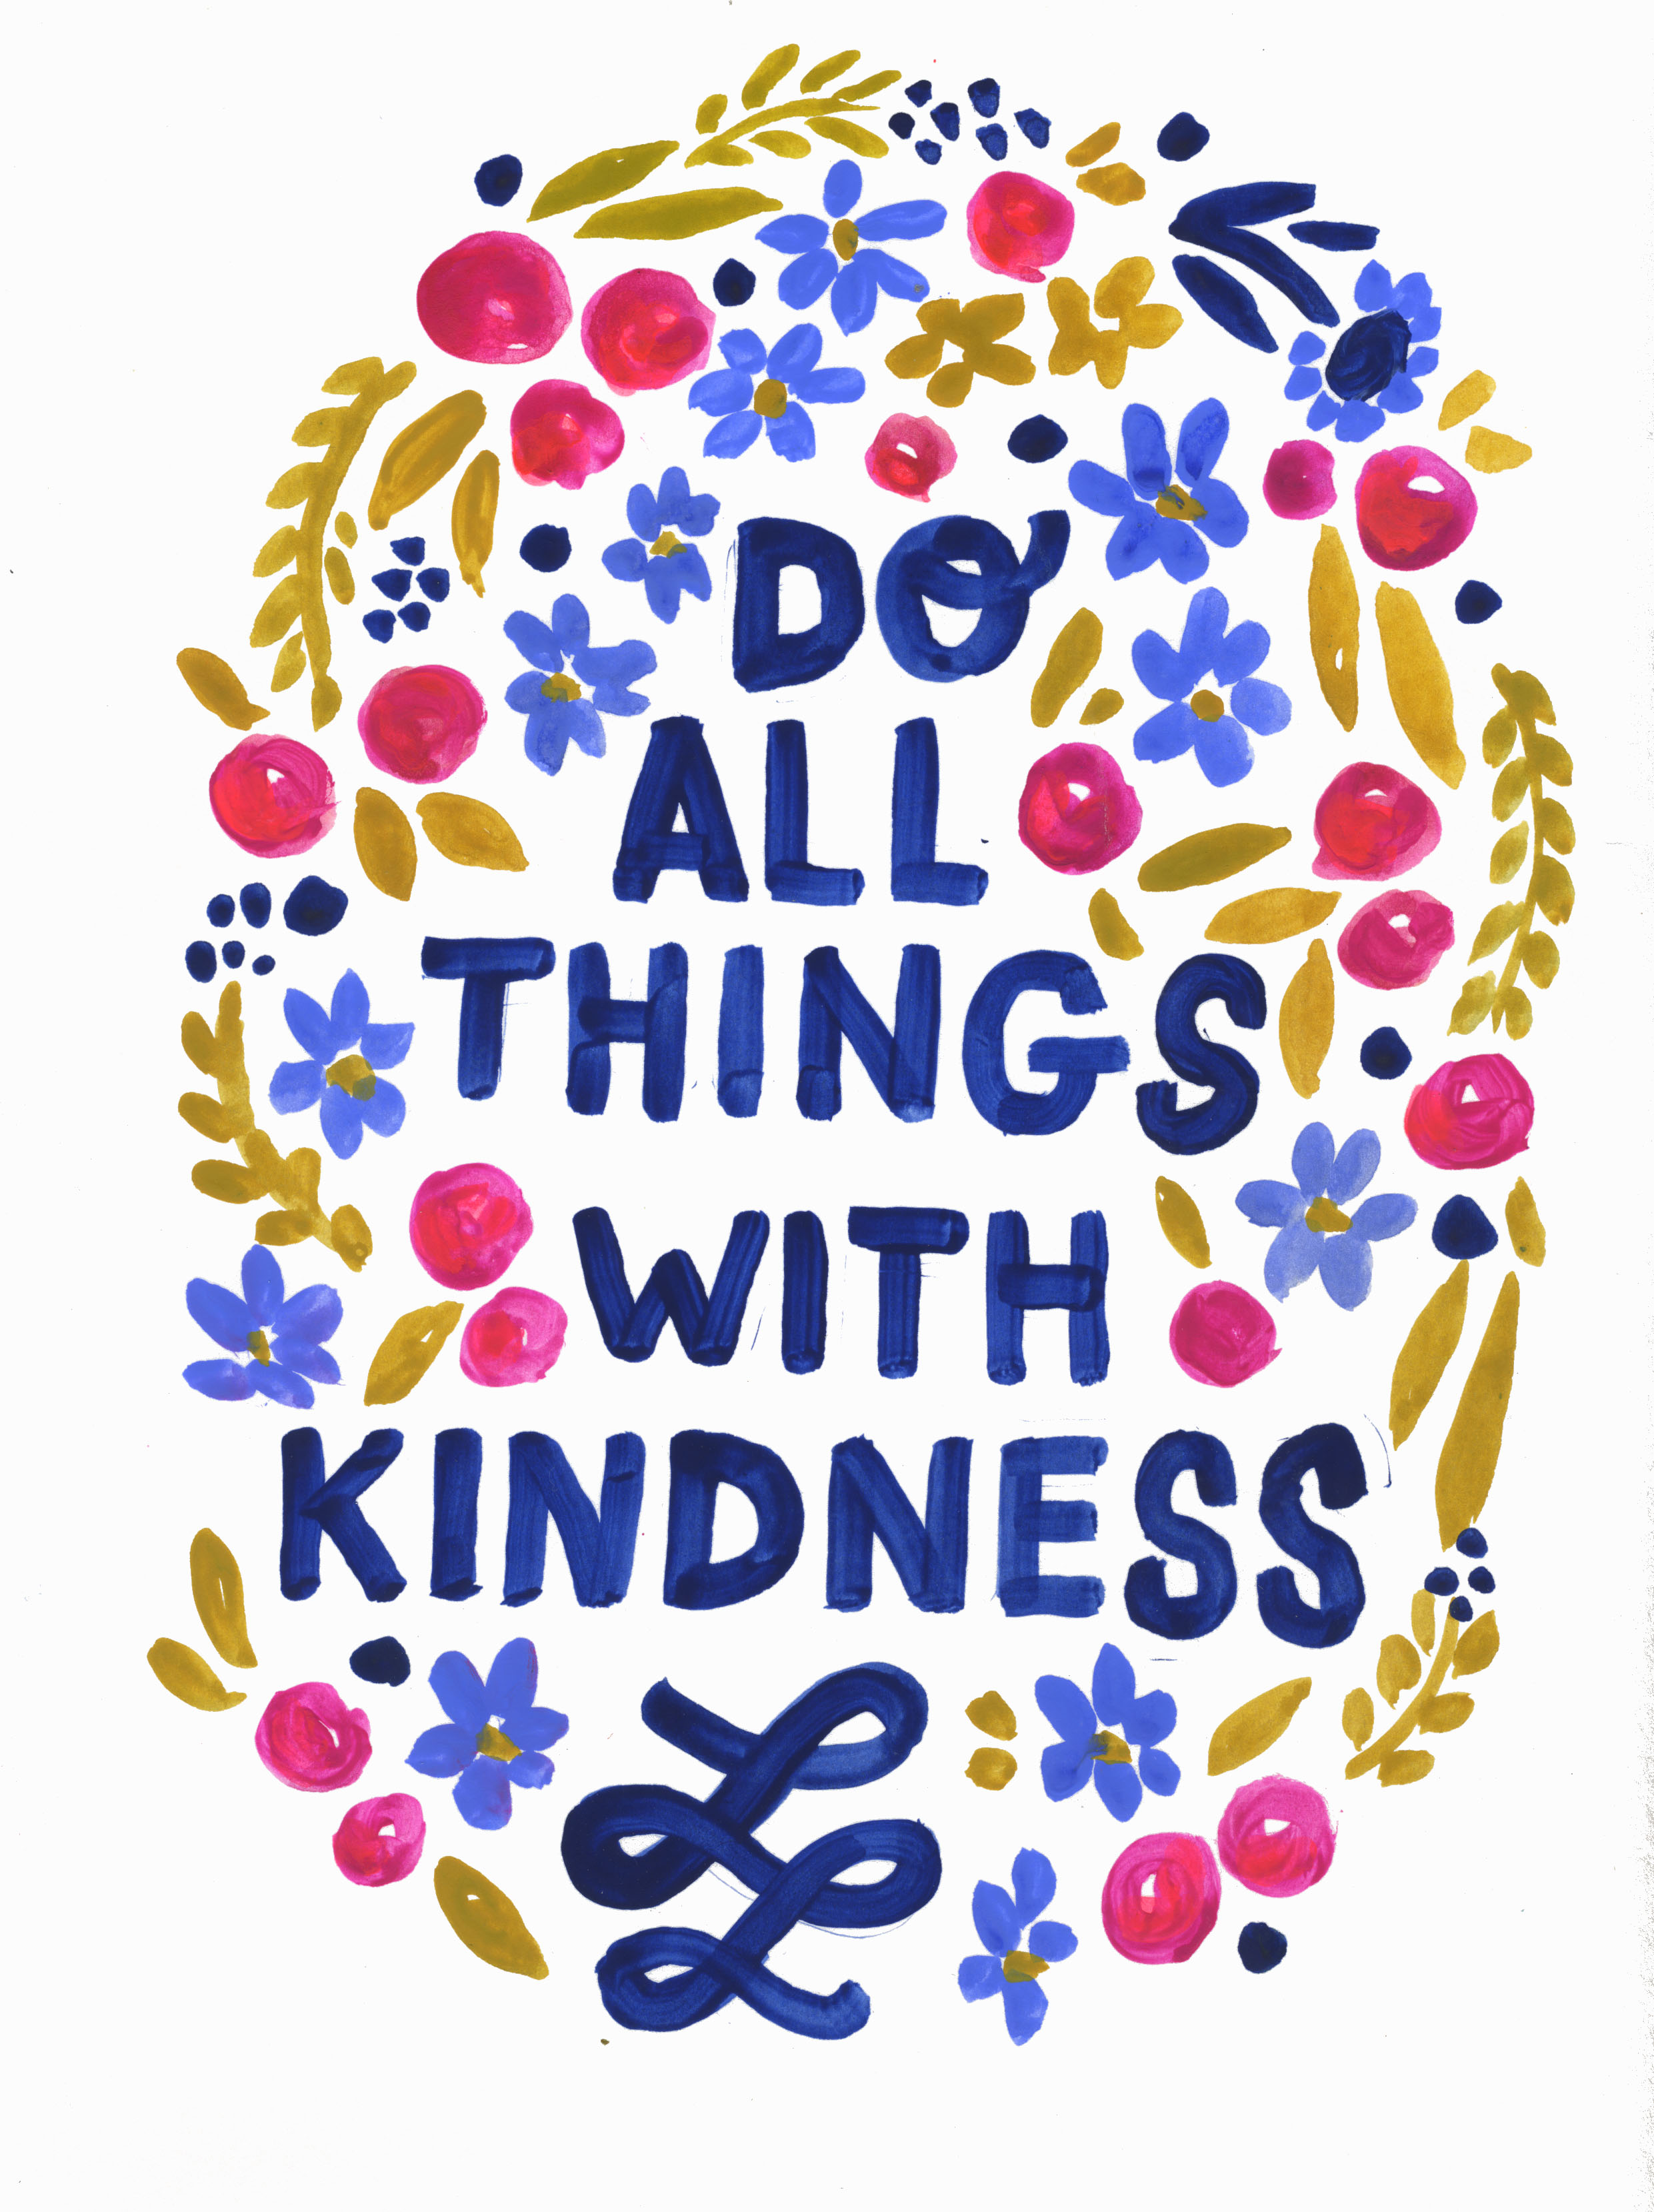 abby hyslop kindness